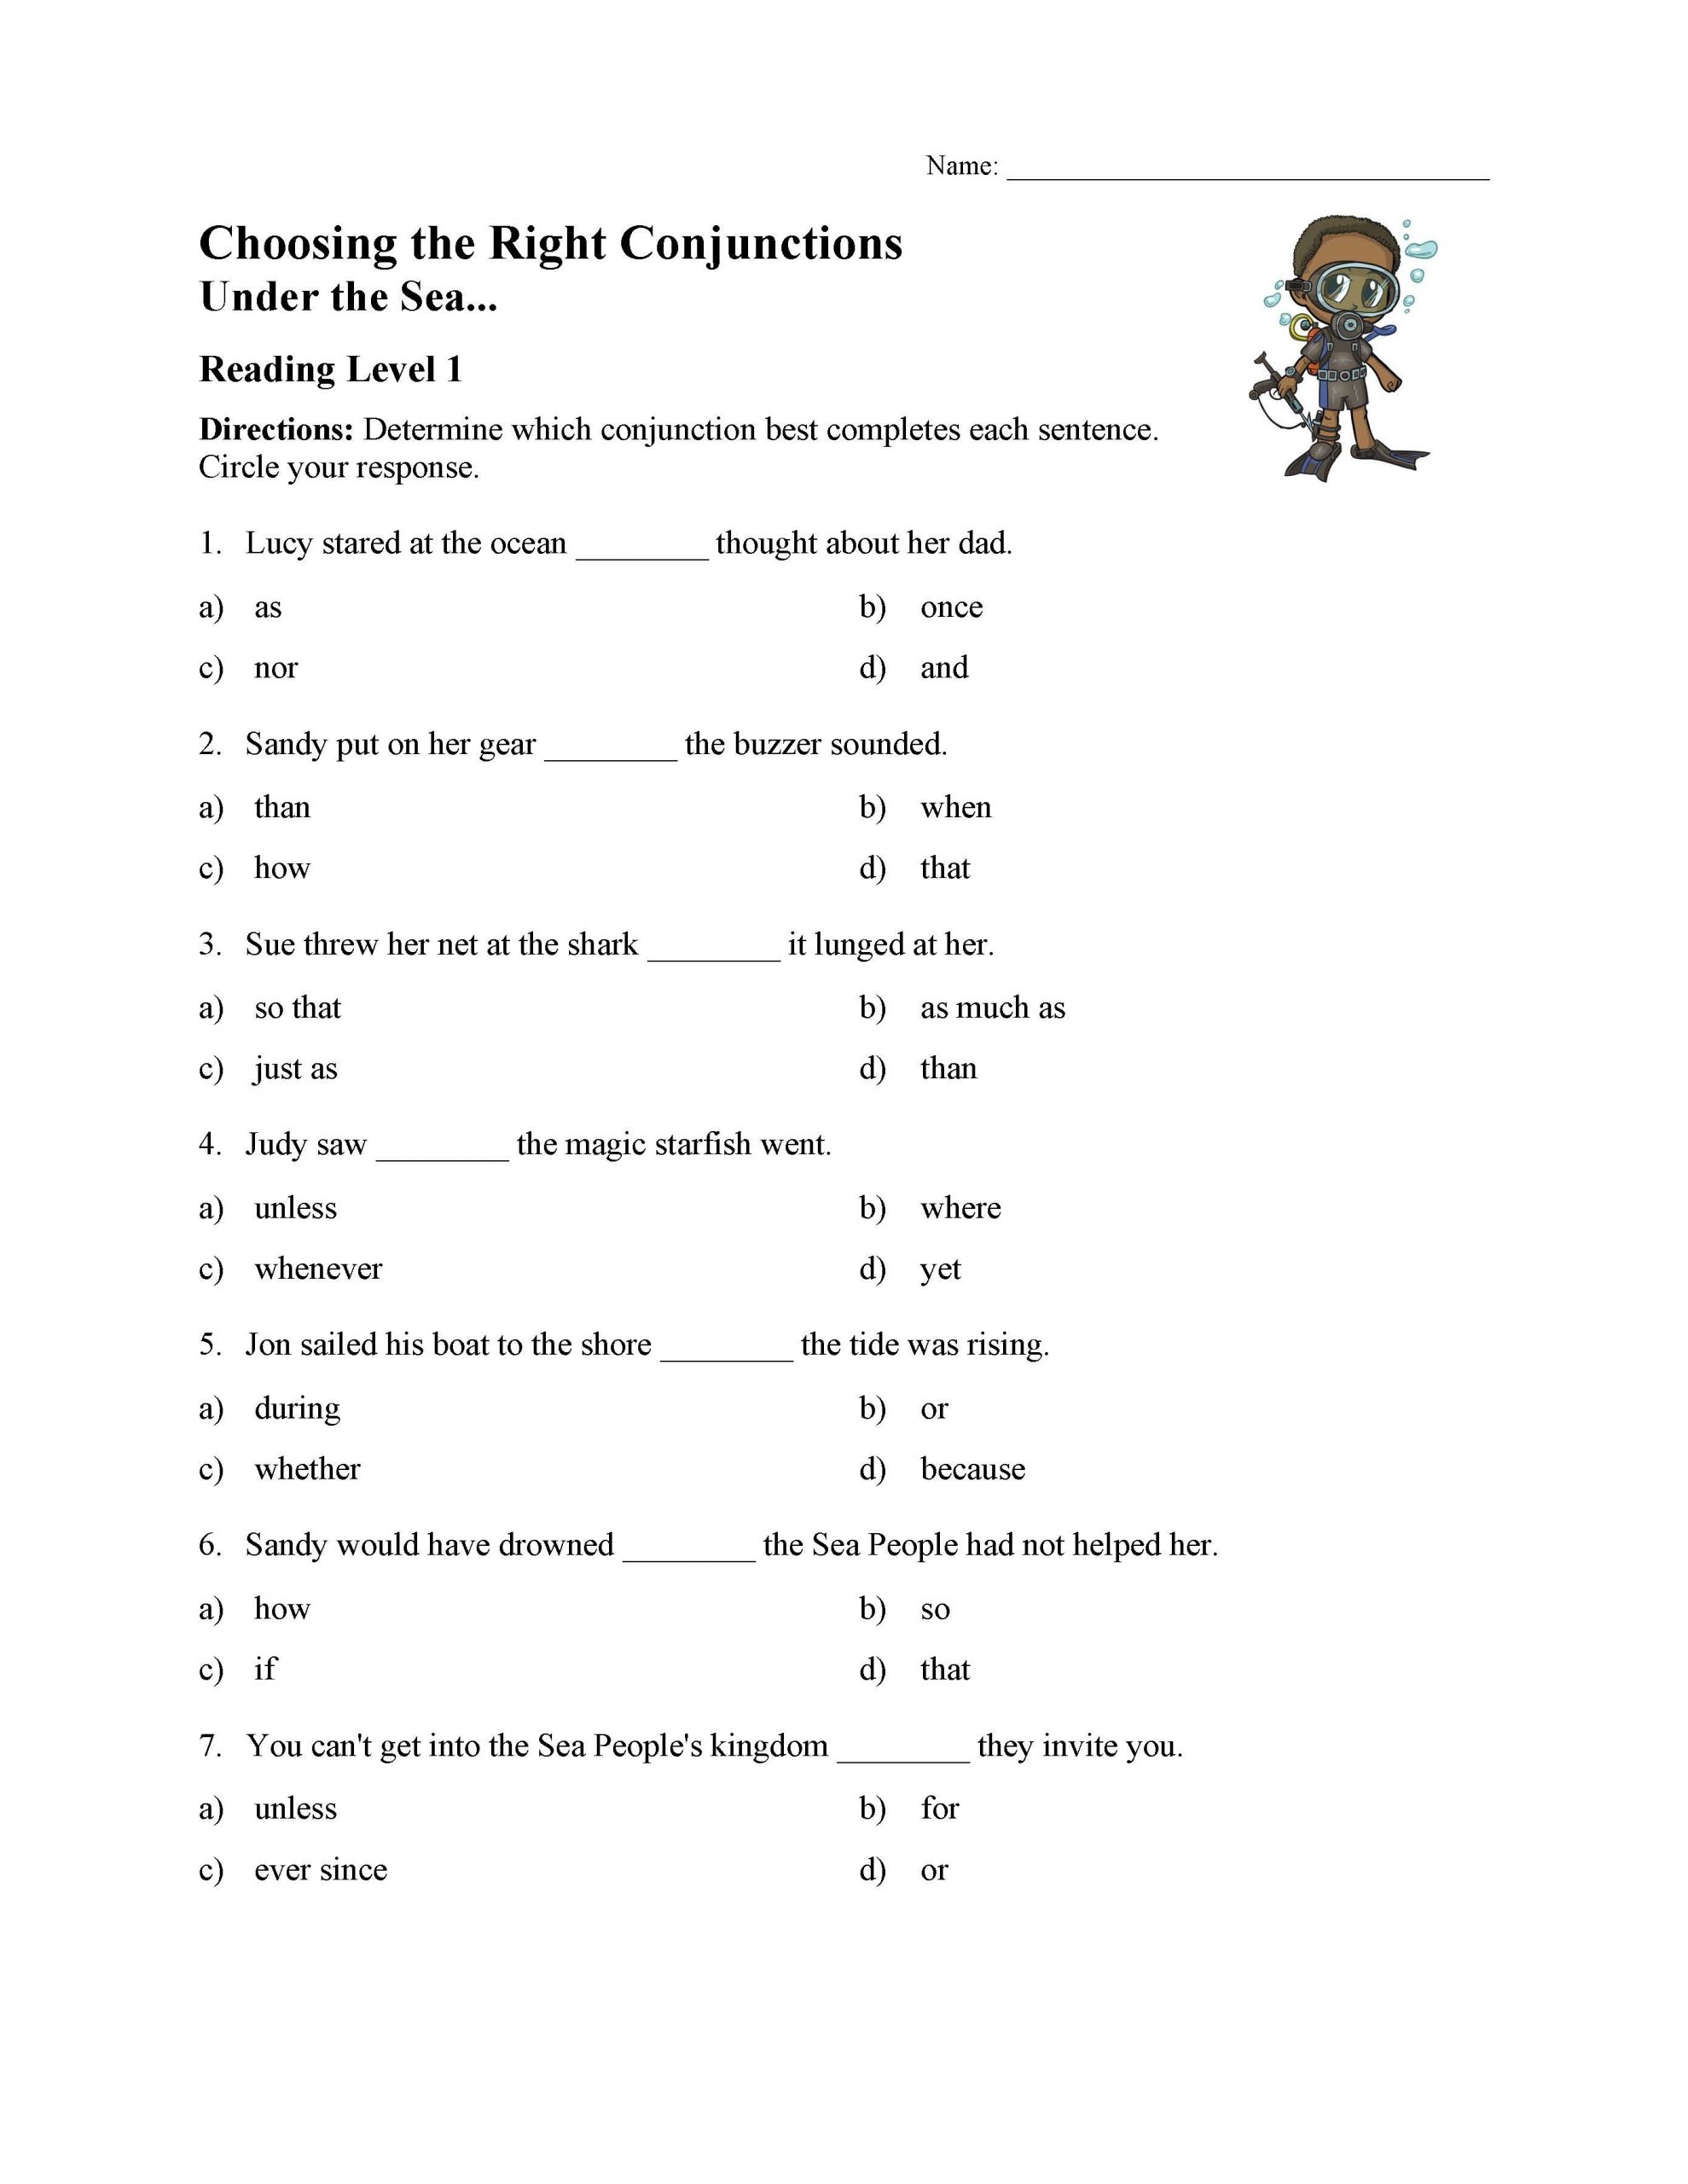 Conjunctions Worksheets 5th Grade Choosing the Right Conjunction Worksheet Reading Level 1